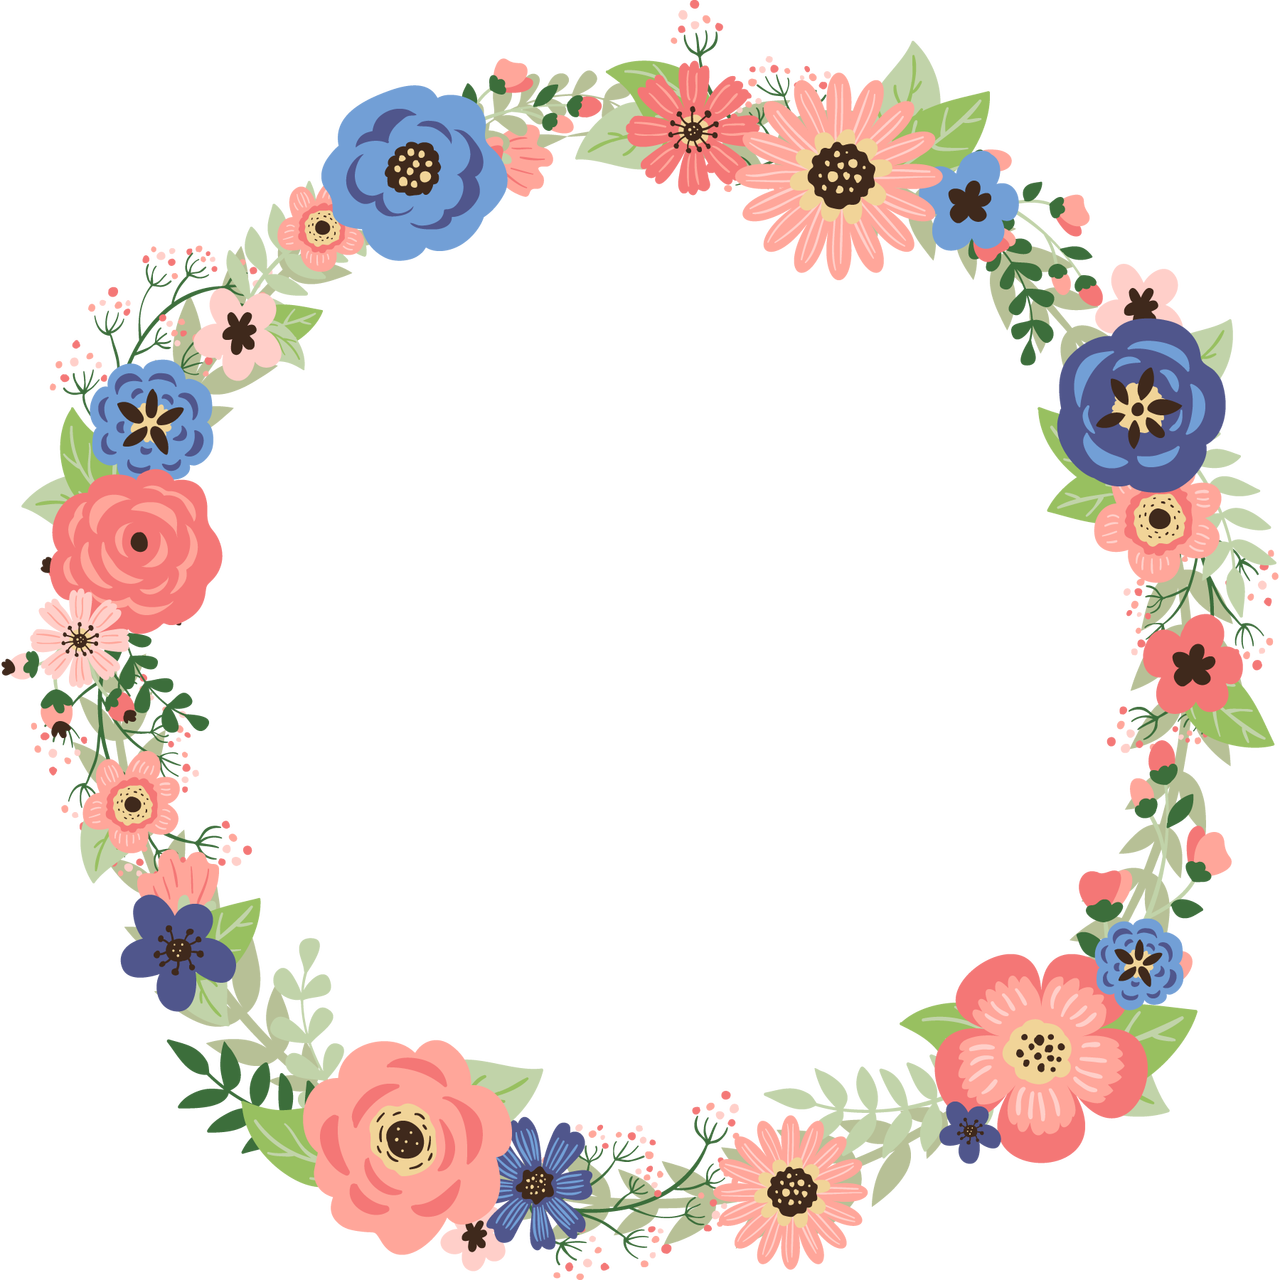 Rustic flower clipart picture black and white library CORAL AND NAVY FLORAL WREATH READY TO PRESS TRANSFER - Blue Phoenix ... picture black and white library